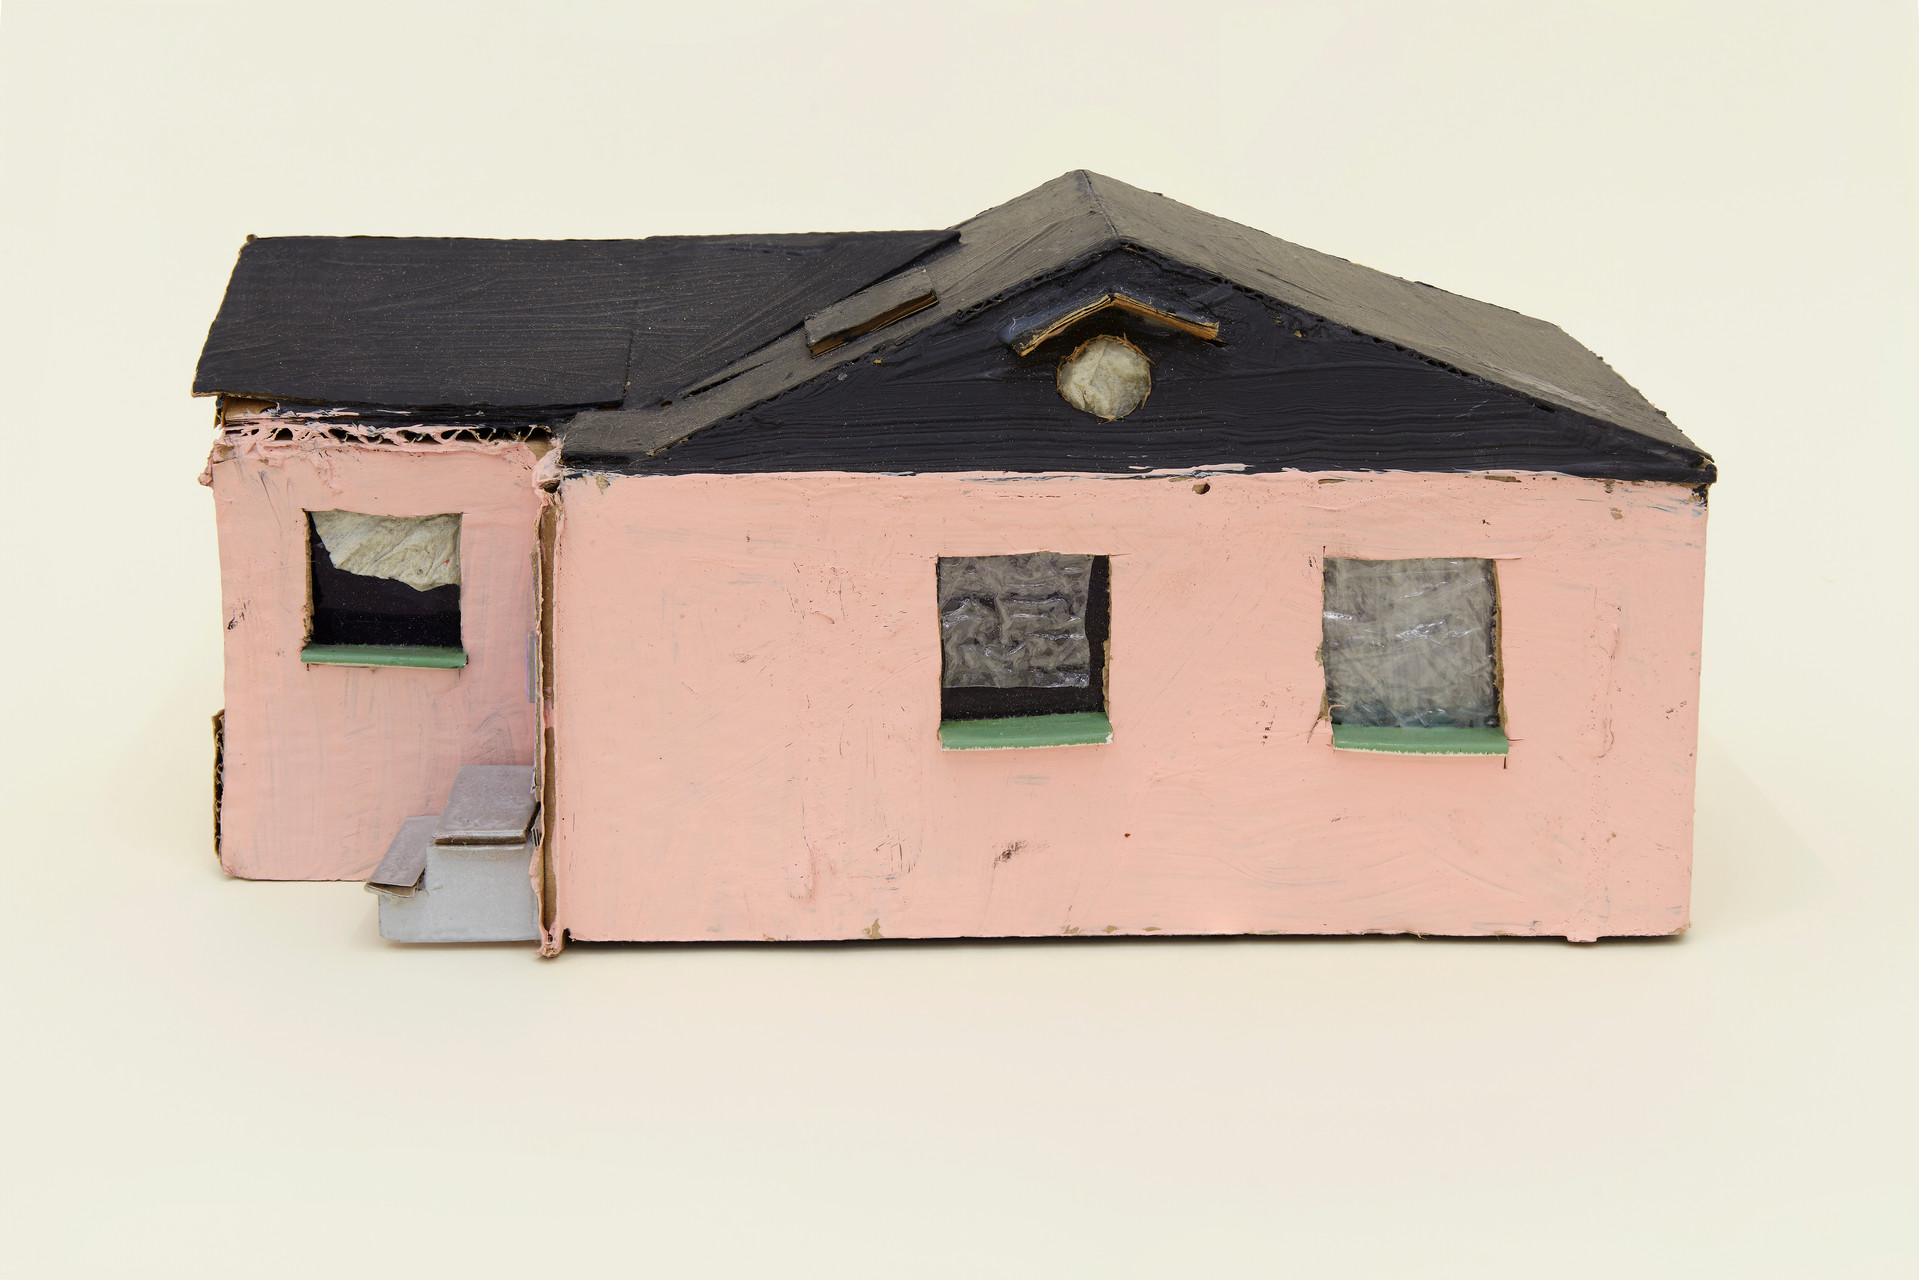 Leo Gabin  Untitled (Real Estate), 2017 – 2019  Acrylic on cardboard  9 x 4 1/2 x 4 1/2 inches